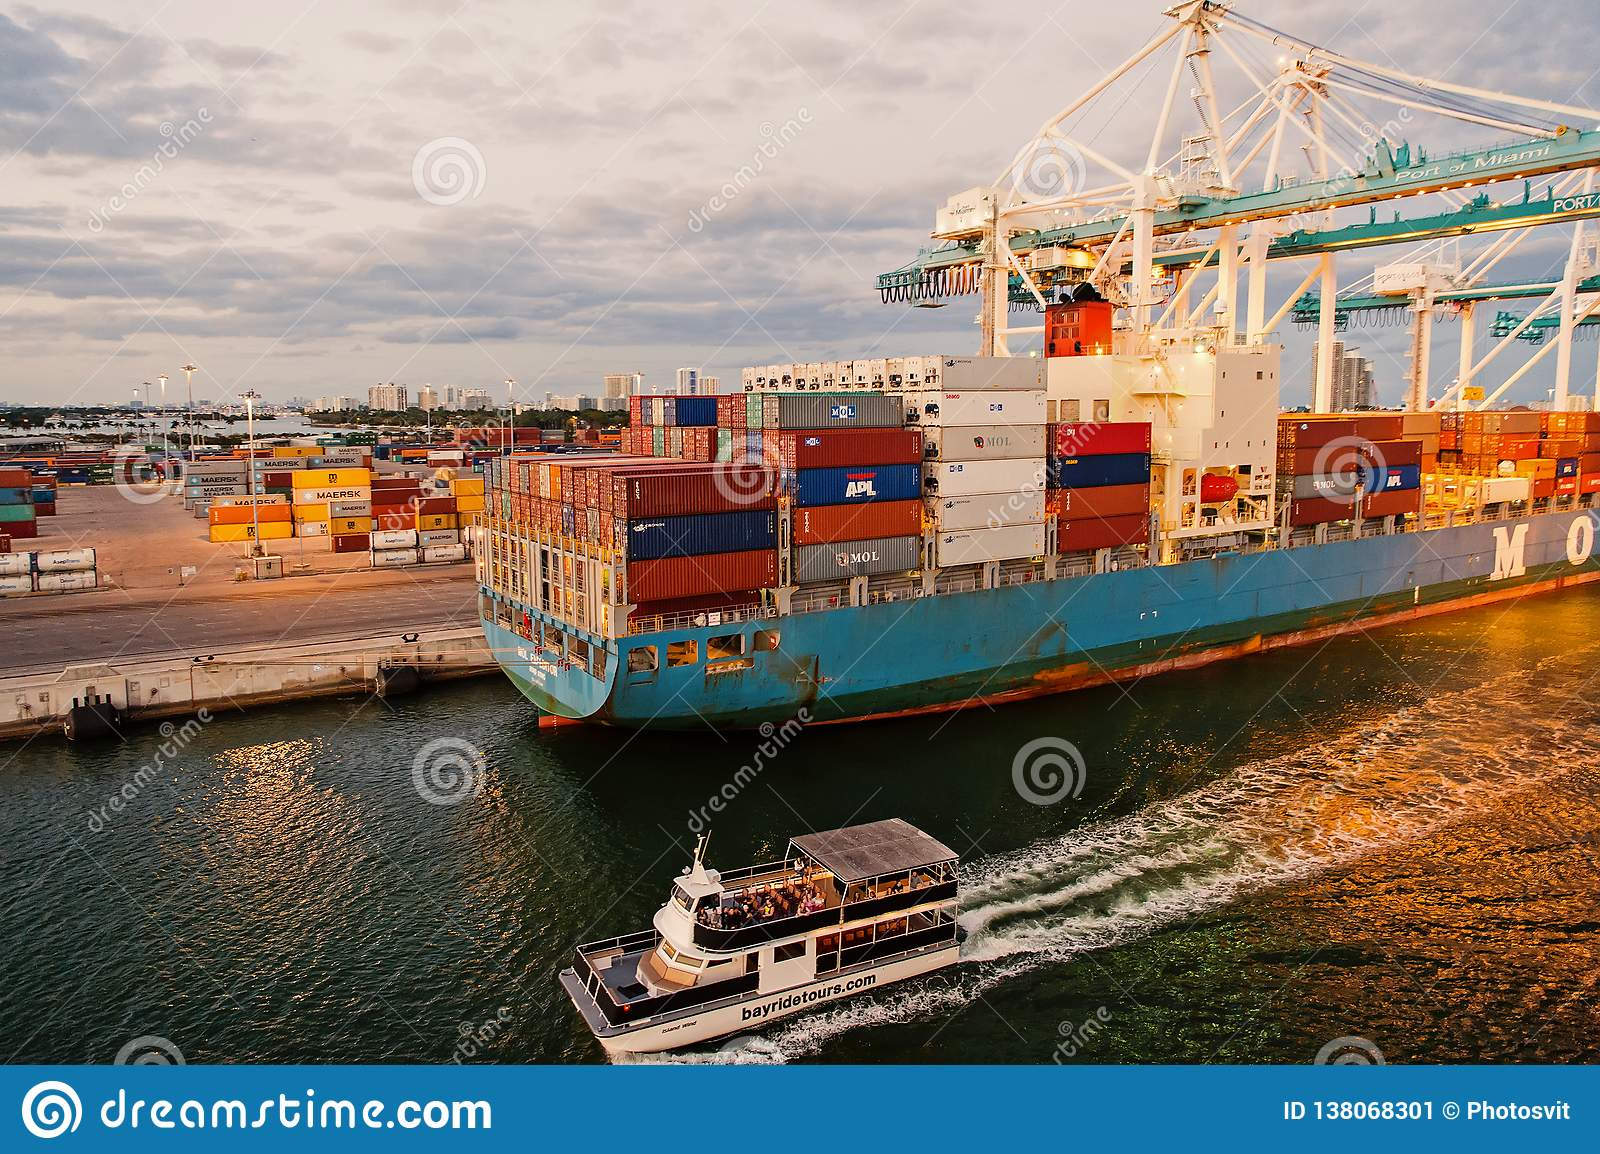 Miami, USA - March 01, 2016: cargo ship and pleasure boat in maritime container port. Sea port or terminal with